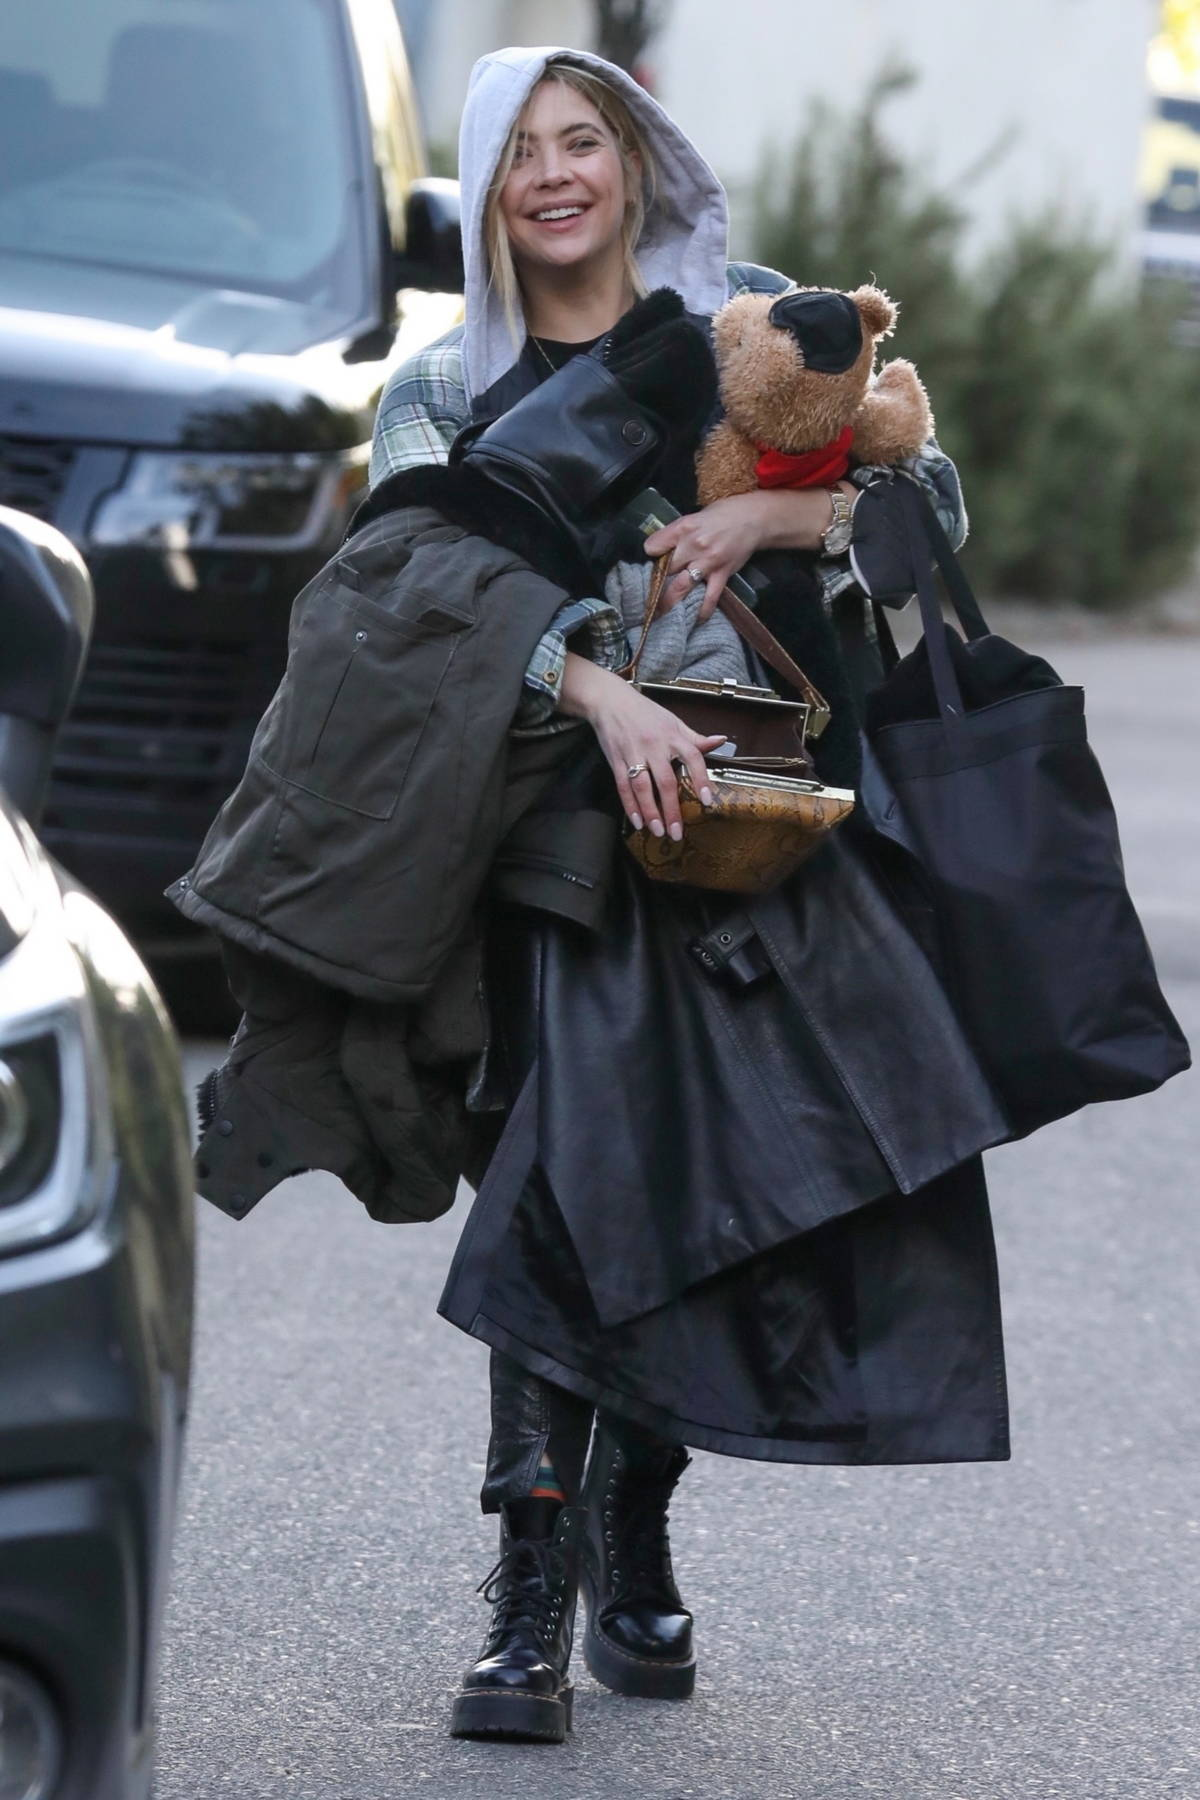 Ashley Benson is all smiles as she brings along a teddy bear while visiting a friend's house in Encino, California